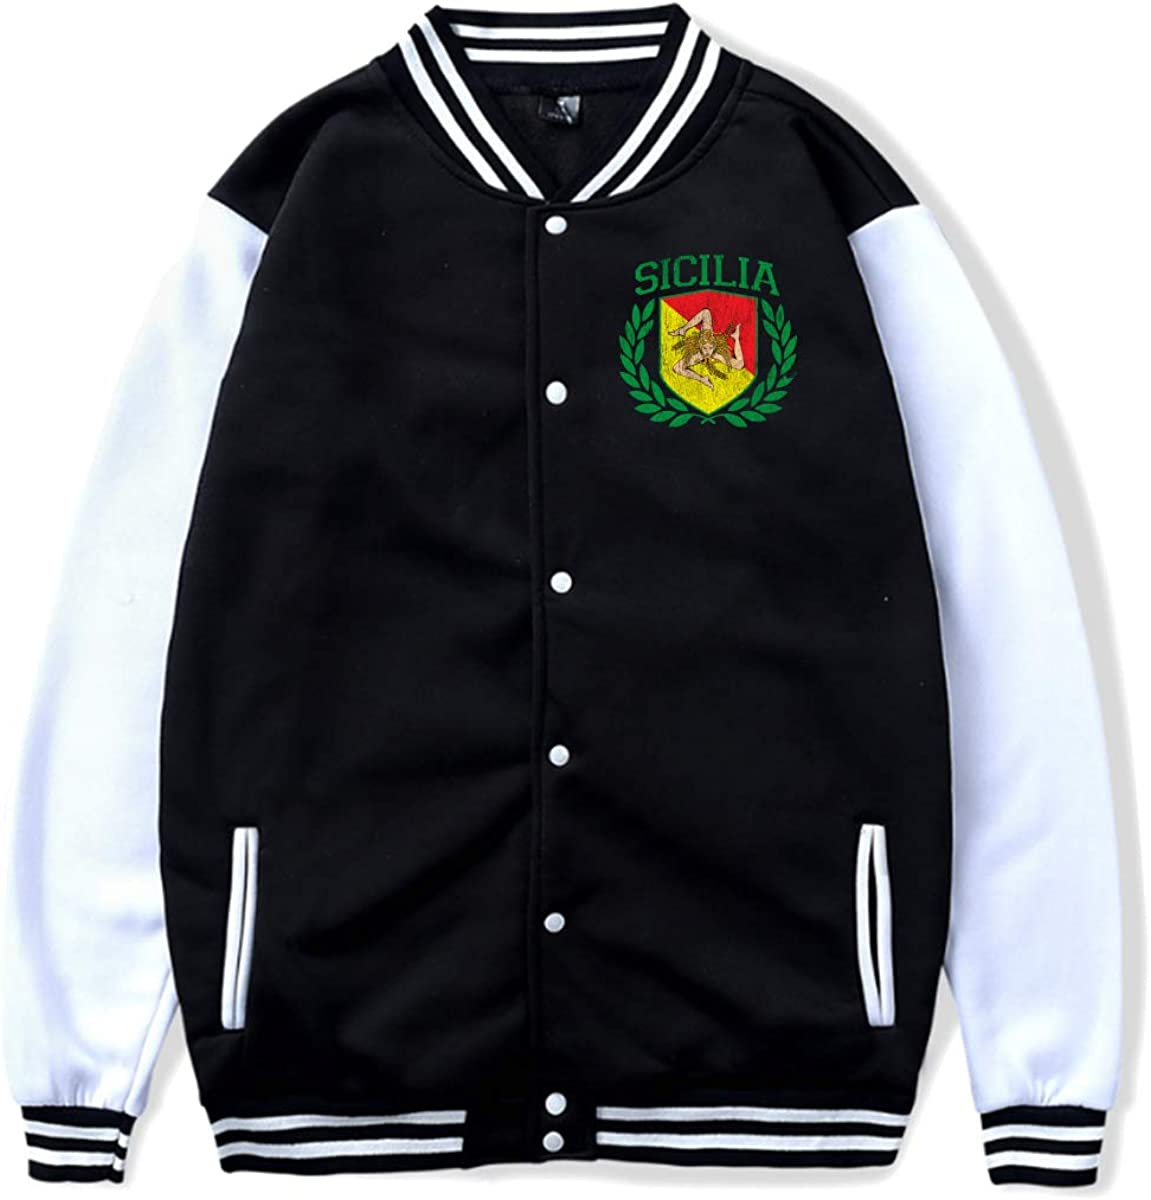 Sicilian Crest Baseball Uniform Jacket Sport Coat